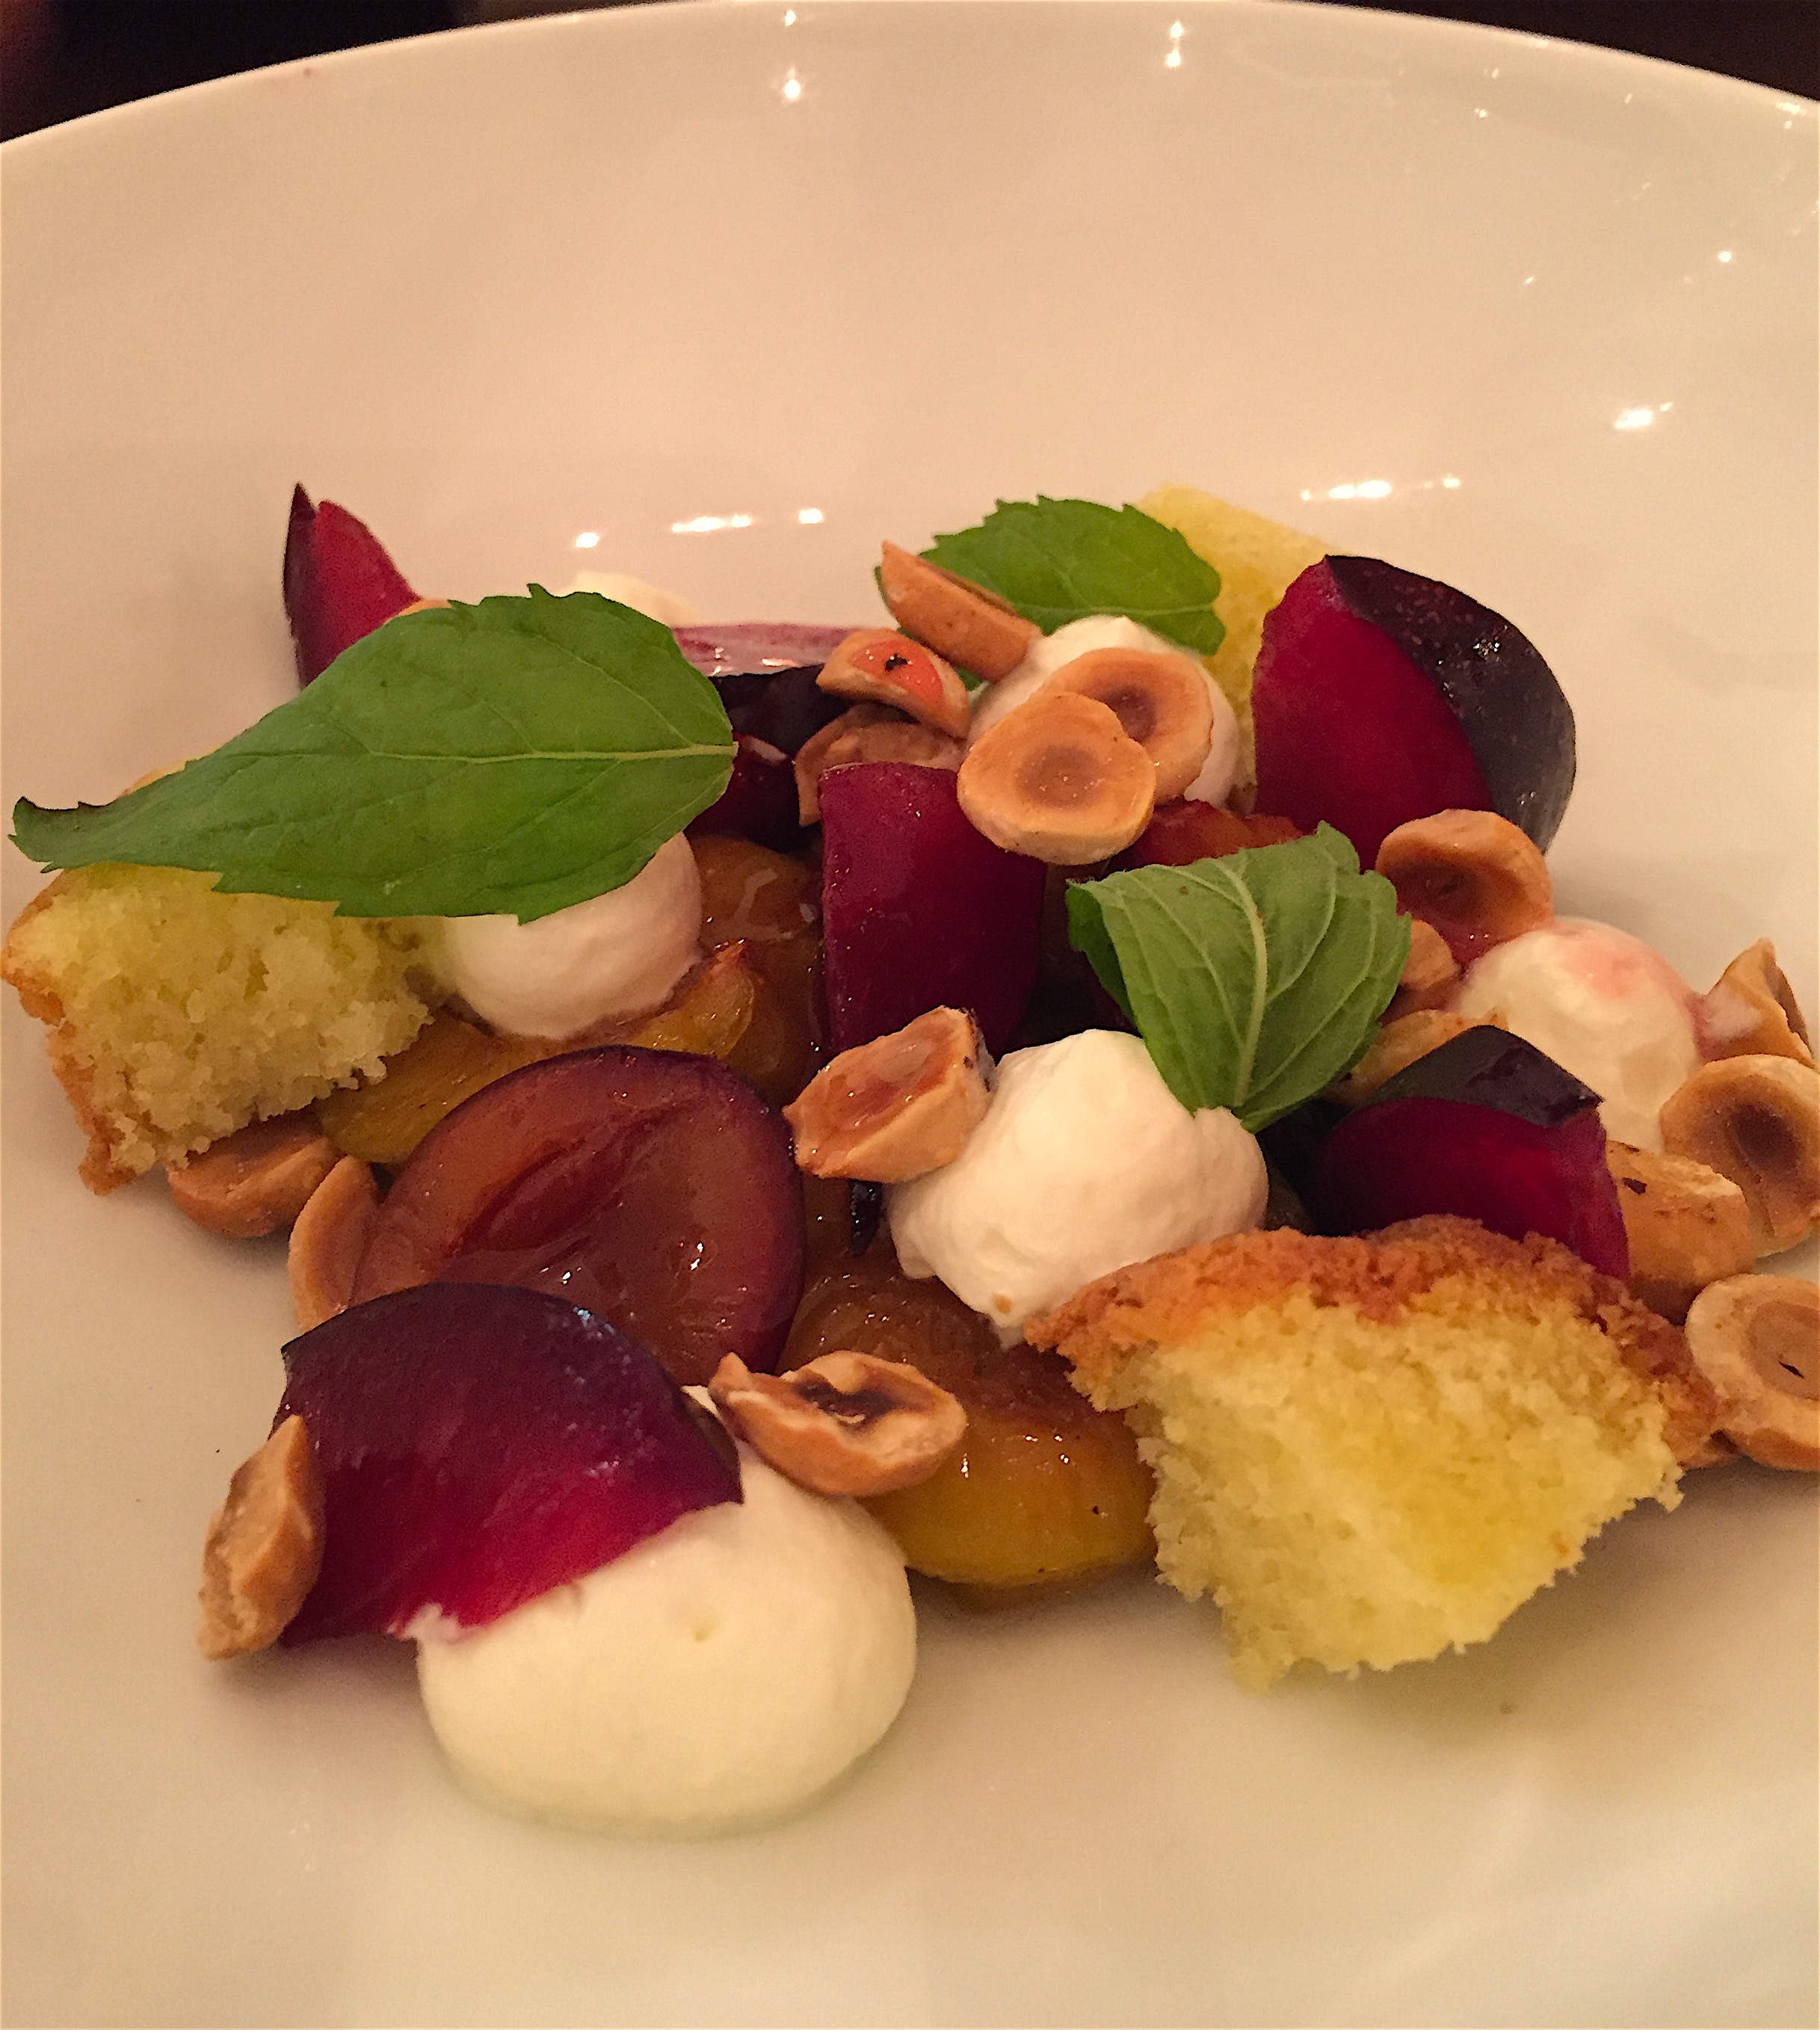 Eels - desserts of roasted plums@ Alexander Lobrano